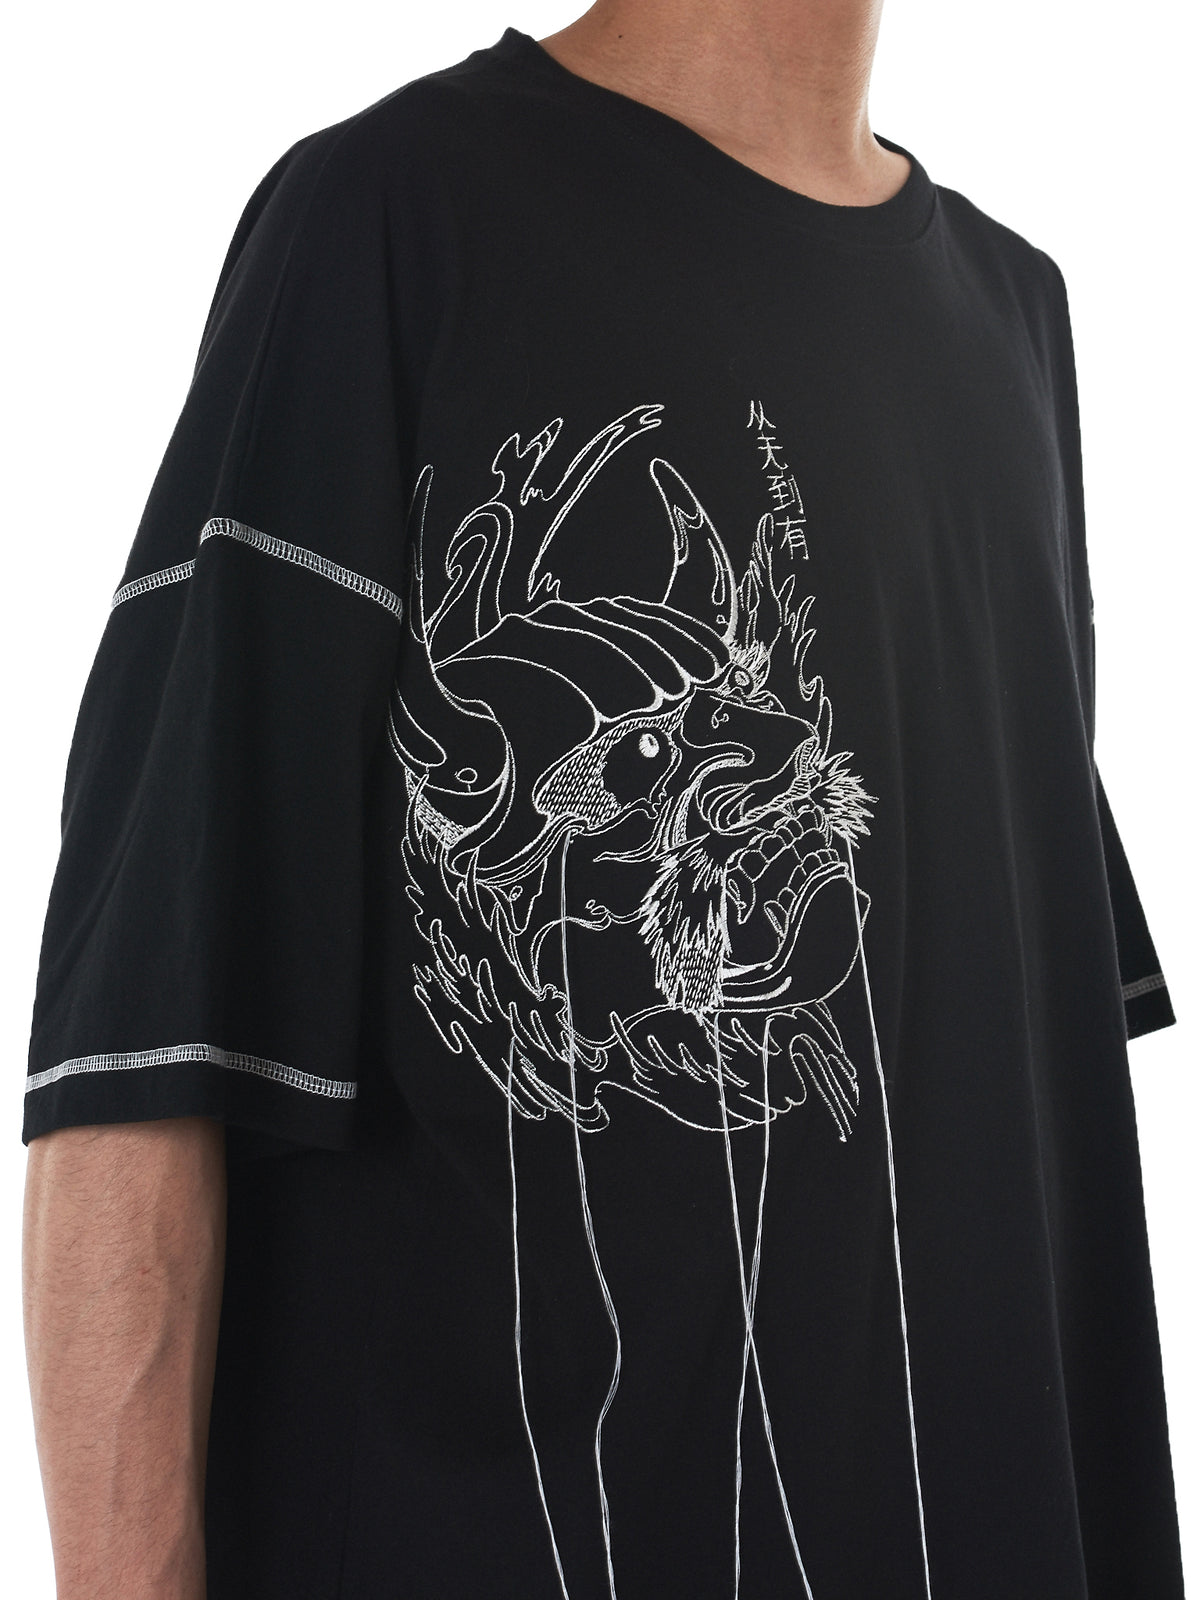 R. Shemiste Embroidery Tee - Hlorenzo stitch detail